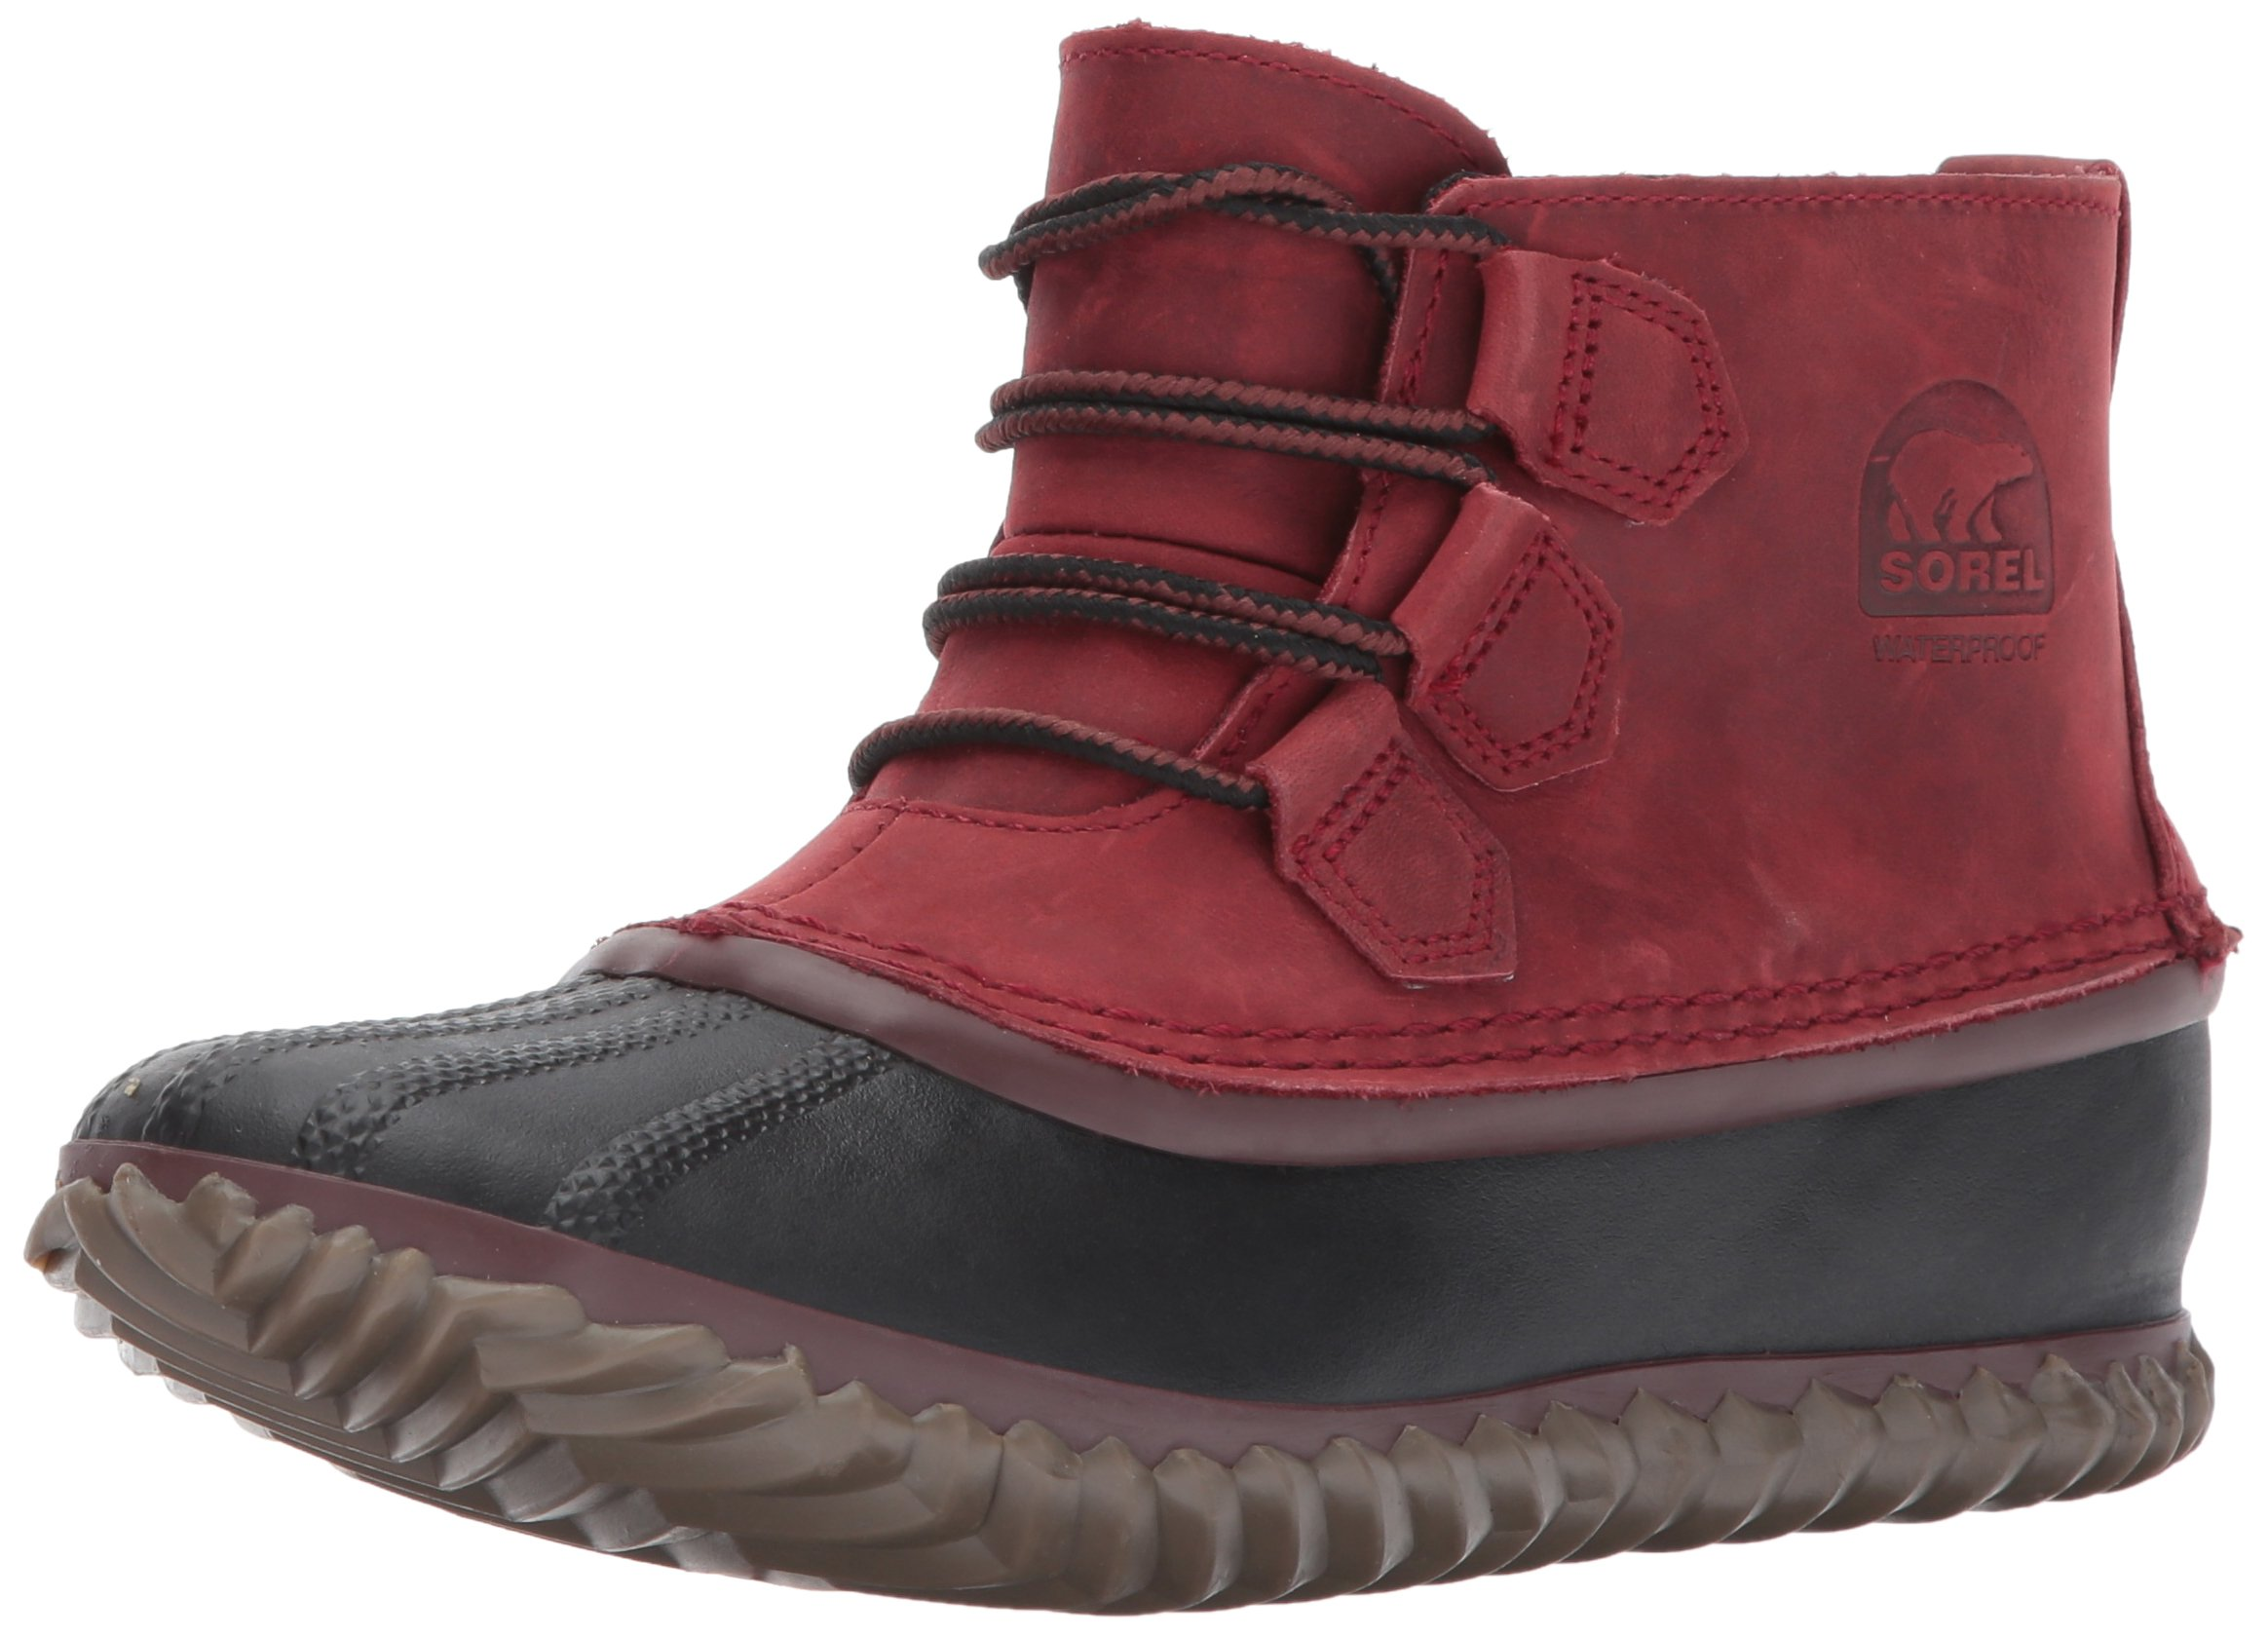 SOREL Women's N About Leather Rain Snow Boot, Red Element, 8.5 M US